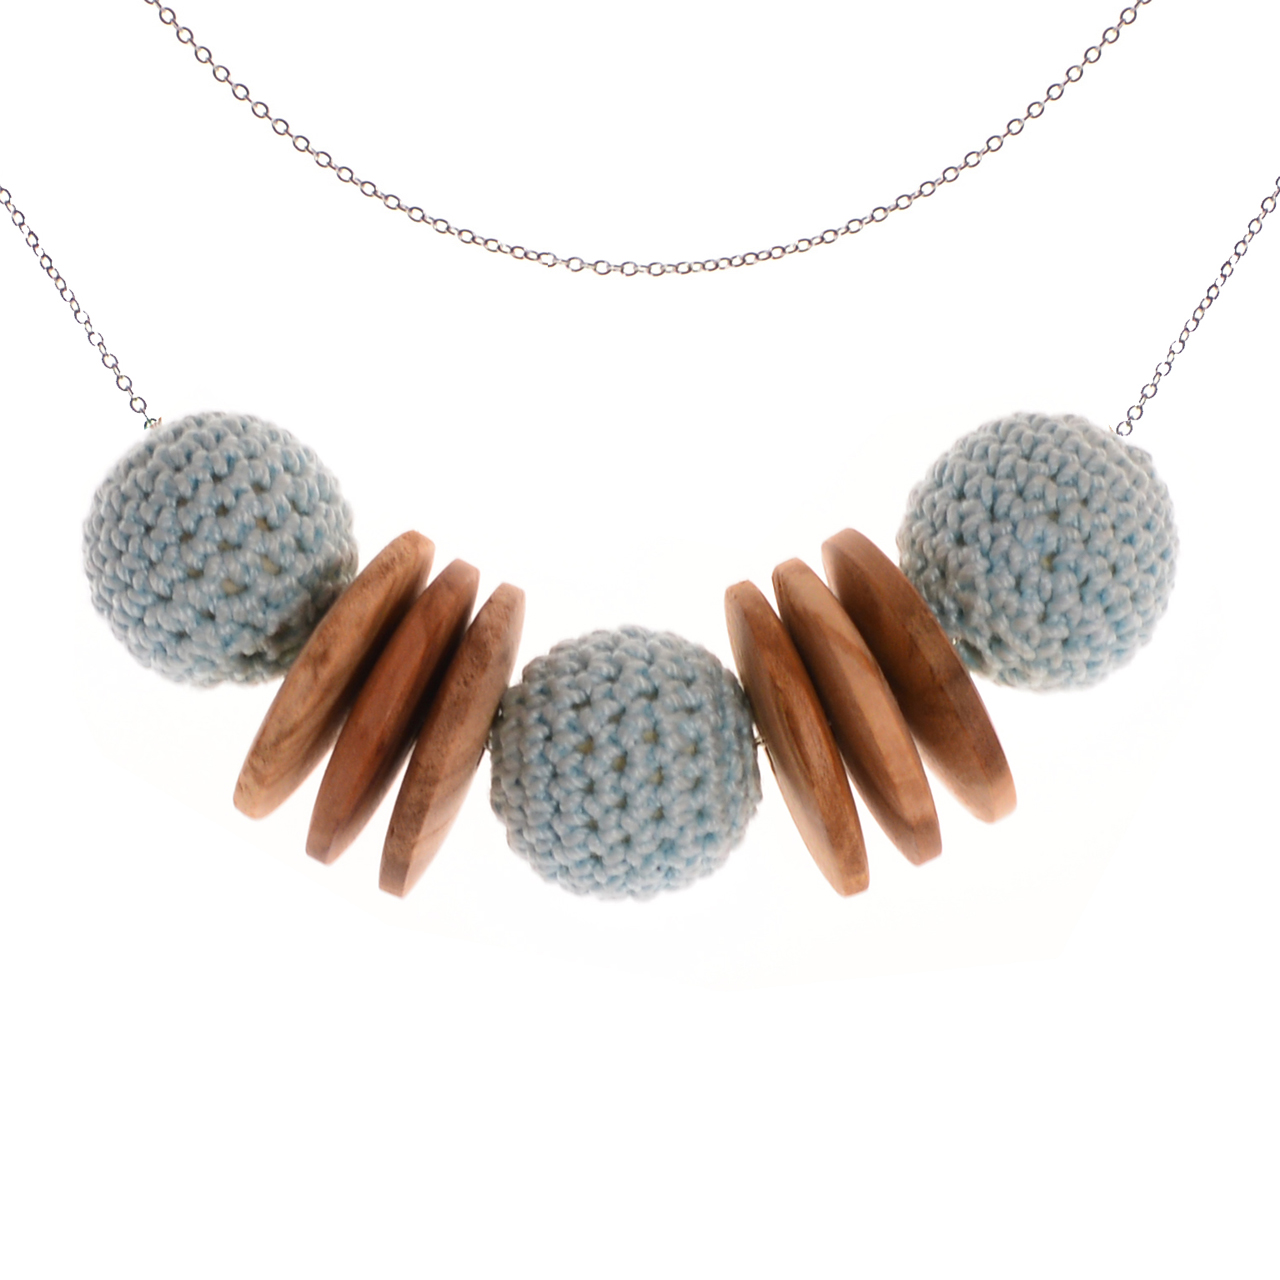 Mon Bijou - Necklace Elegance Nature - Light Grey | The Design Gift Shop